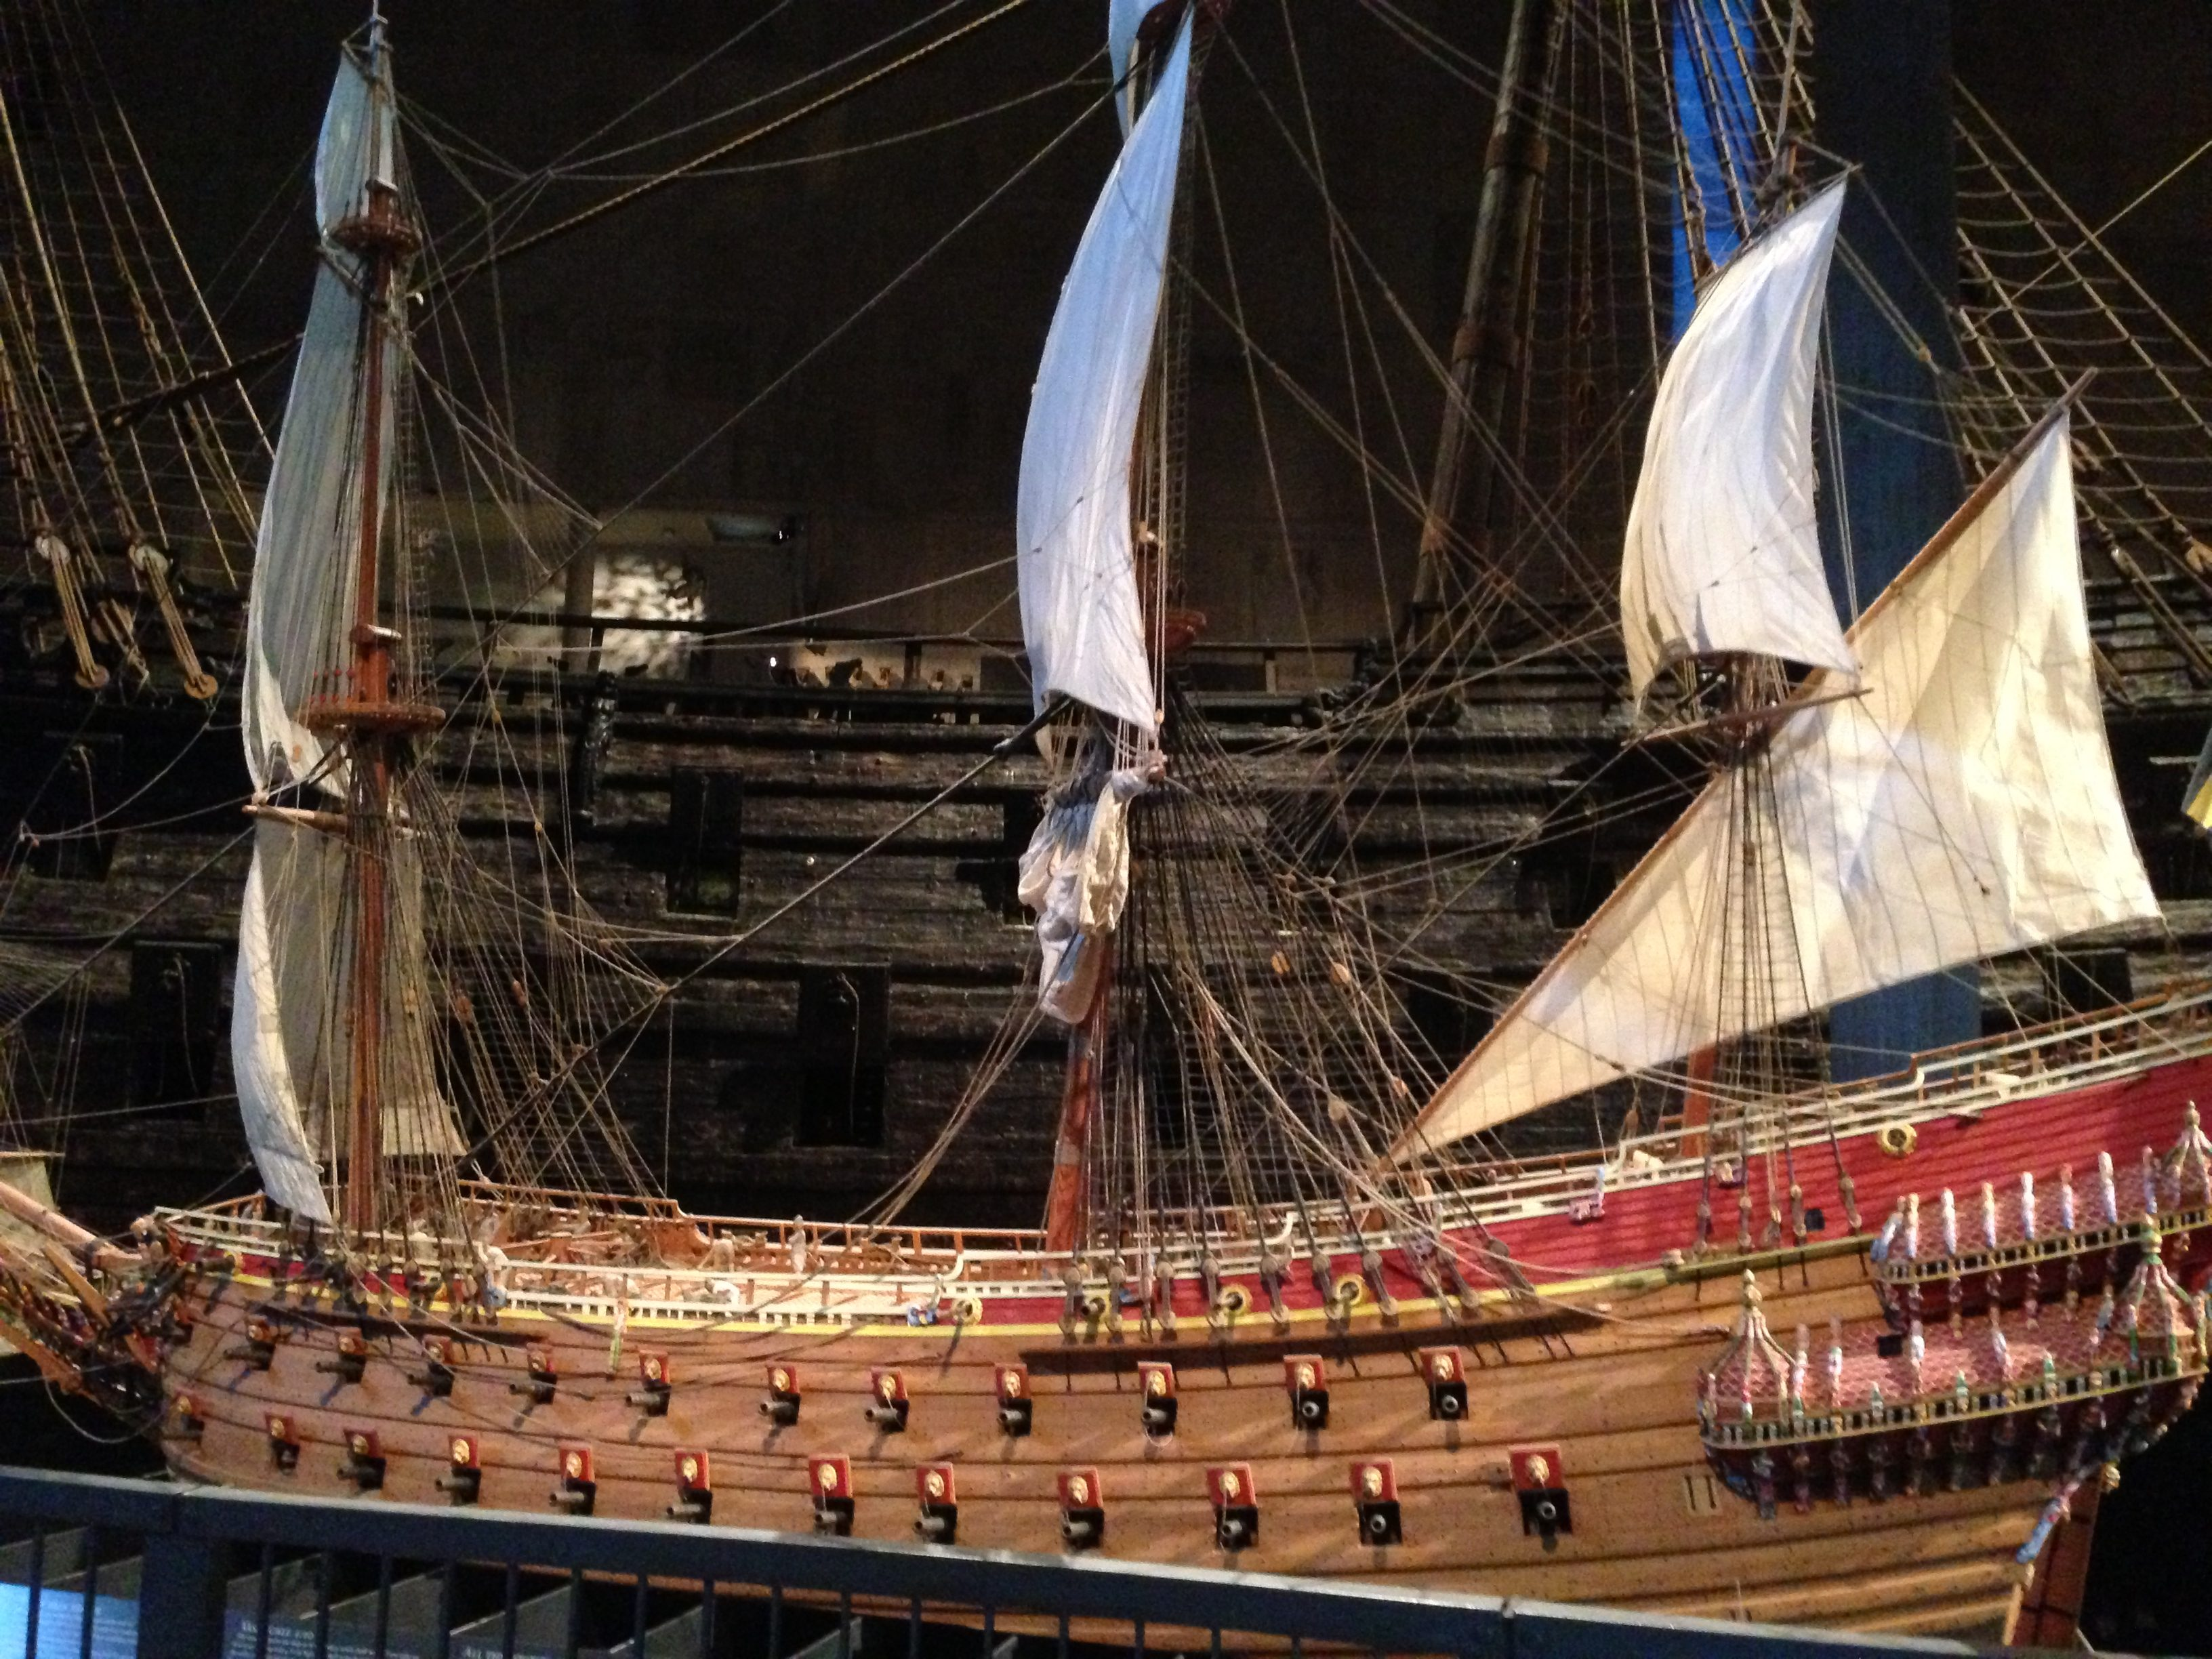 A lower scale replica of what the Vasa looked like